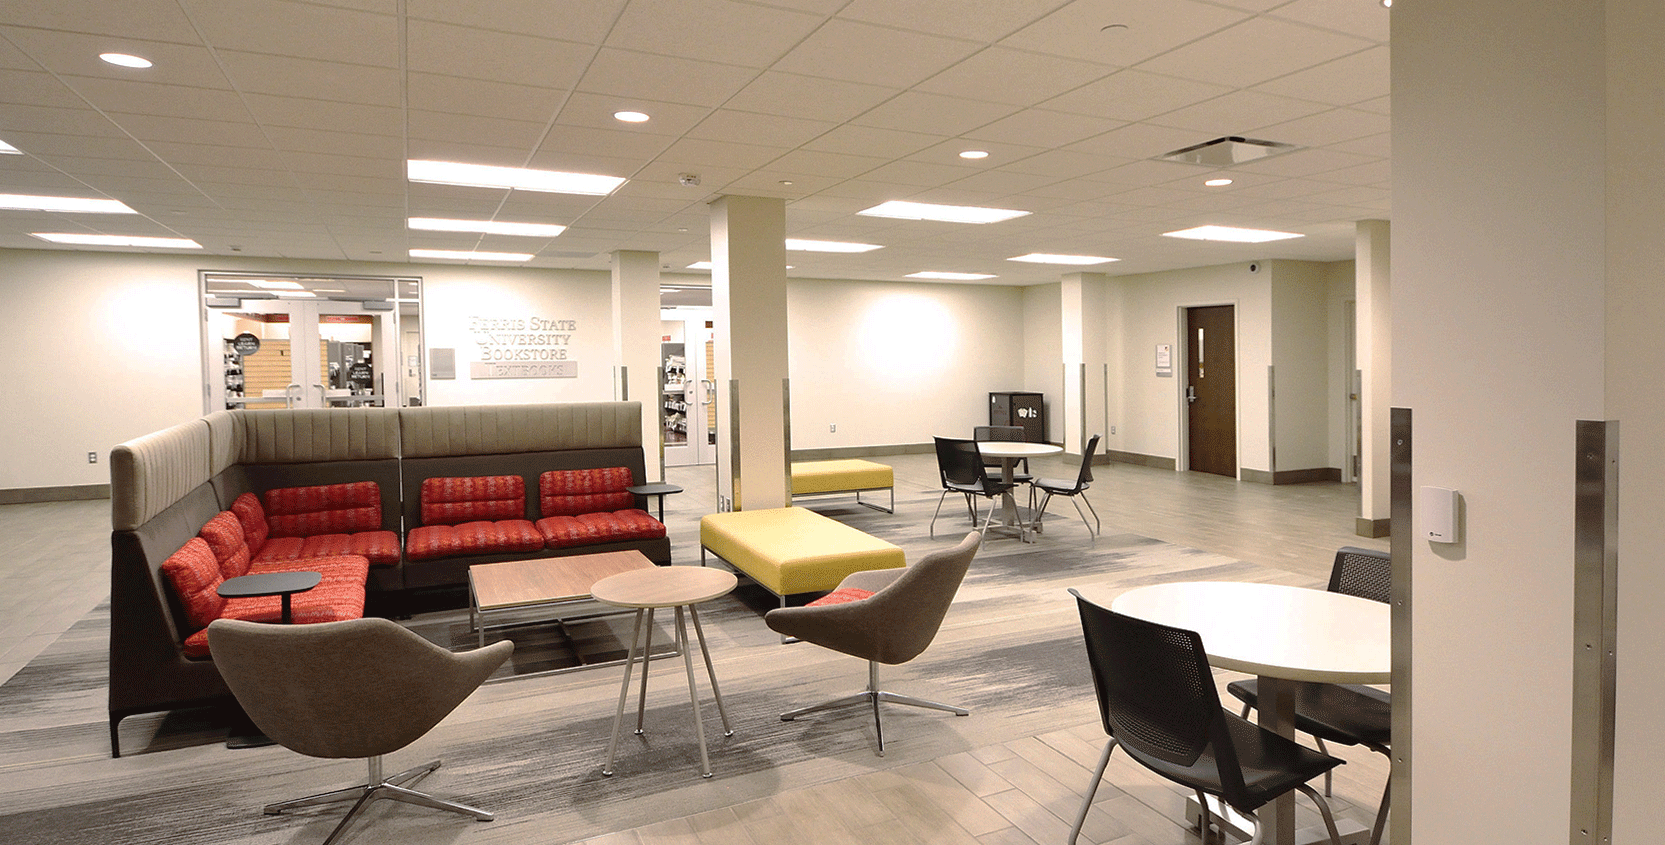 Ferris-State-University-University-Center-Lower-Lobby-2-1665x845